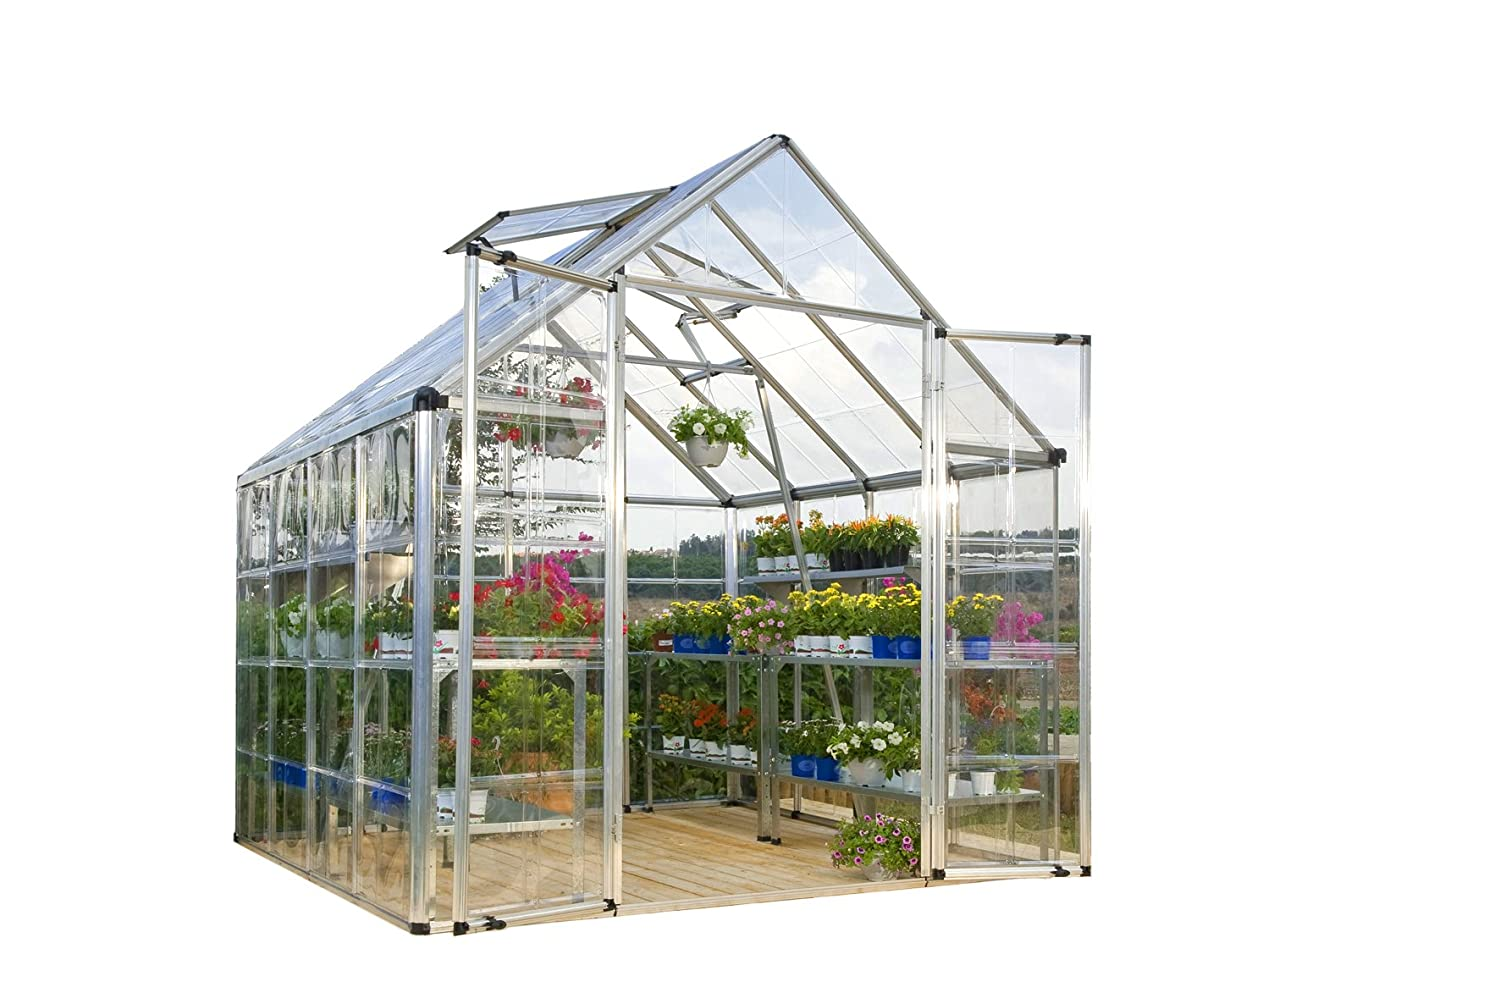 Amazon.com : Palram Snap & Grow Greenhouse - 8' x 8' - Silver : Greenhouse  Cold Frames : Garden & Outdoor